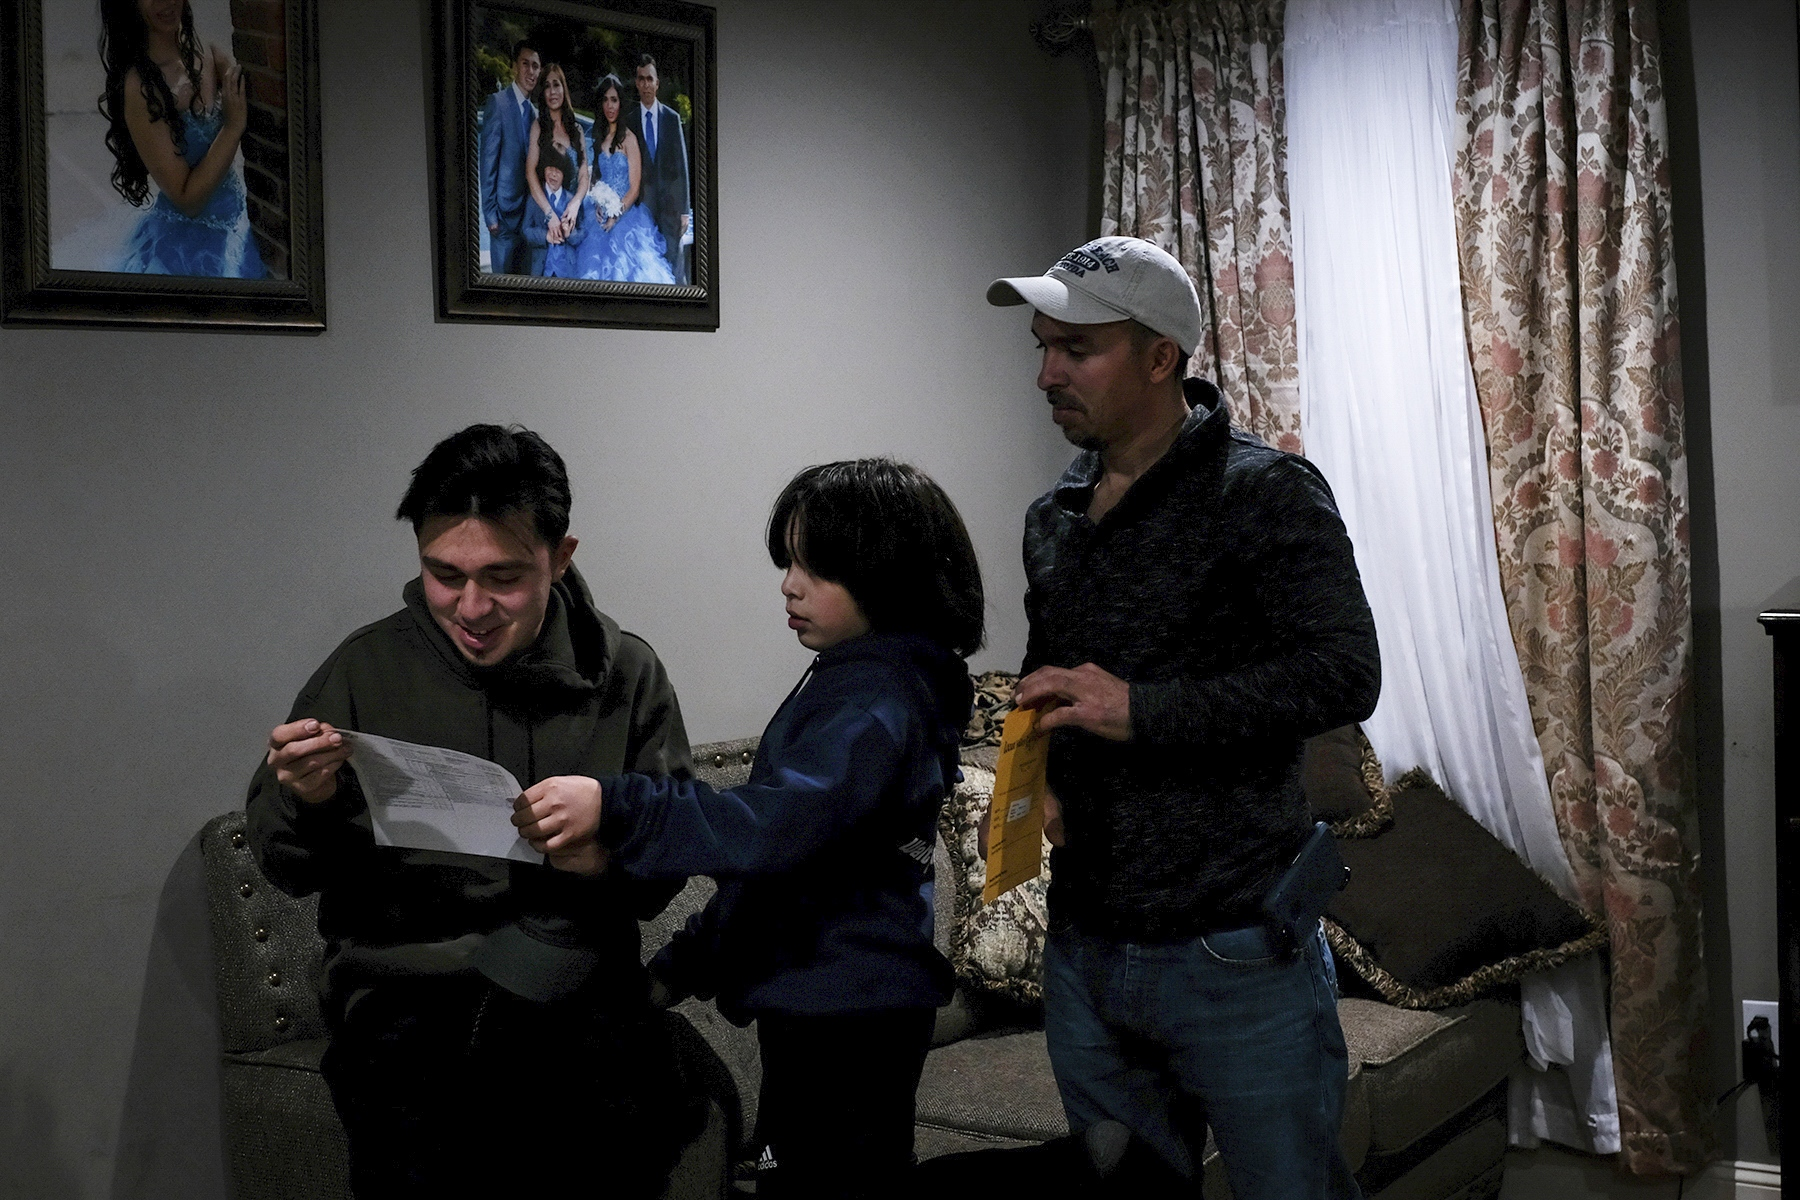 Erik Villalobos reviews his younger brother's grades after he arrived home from school.